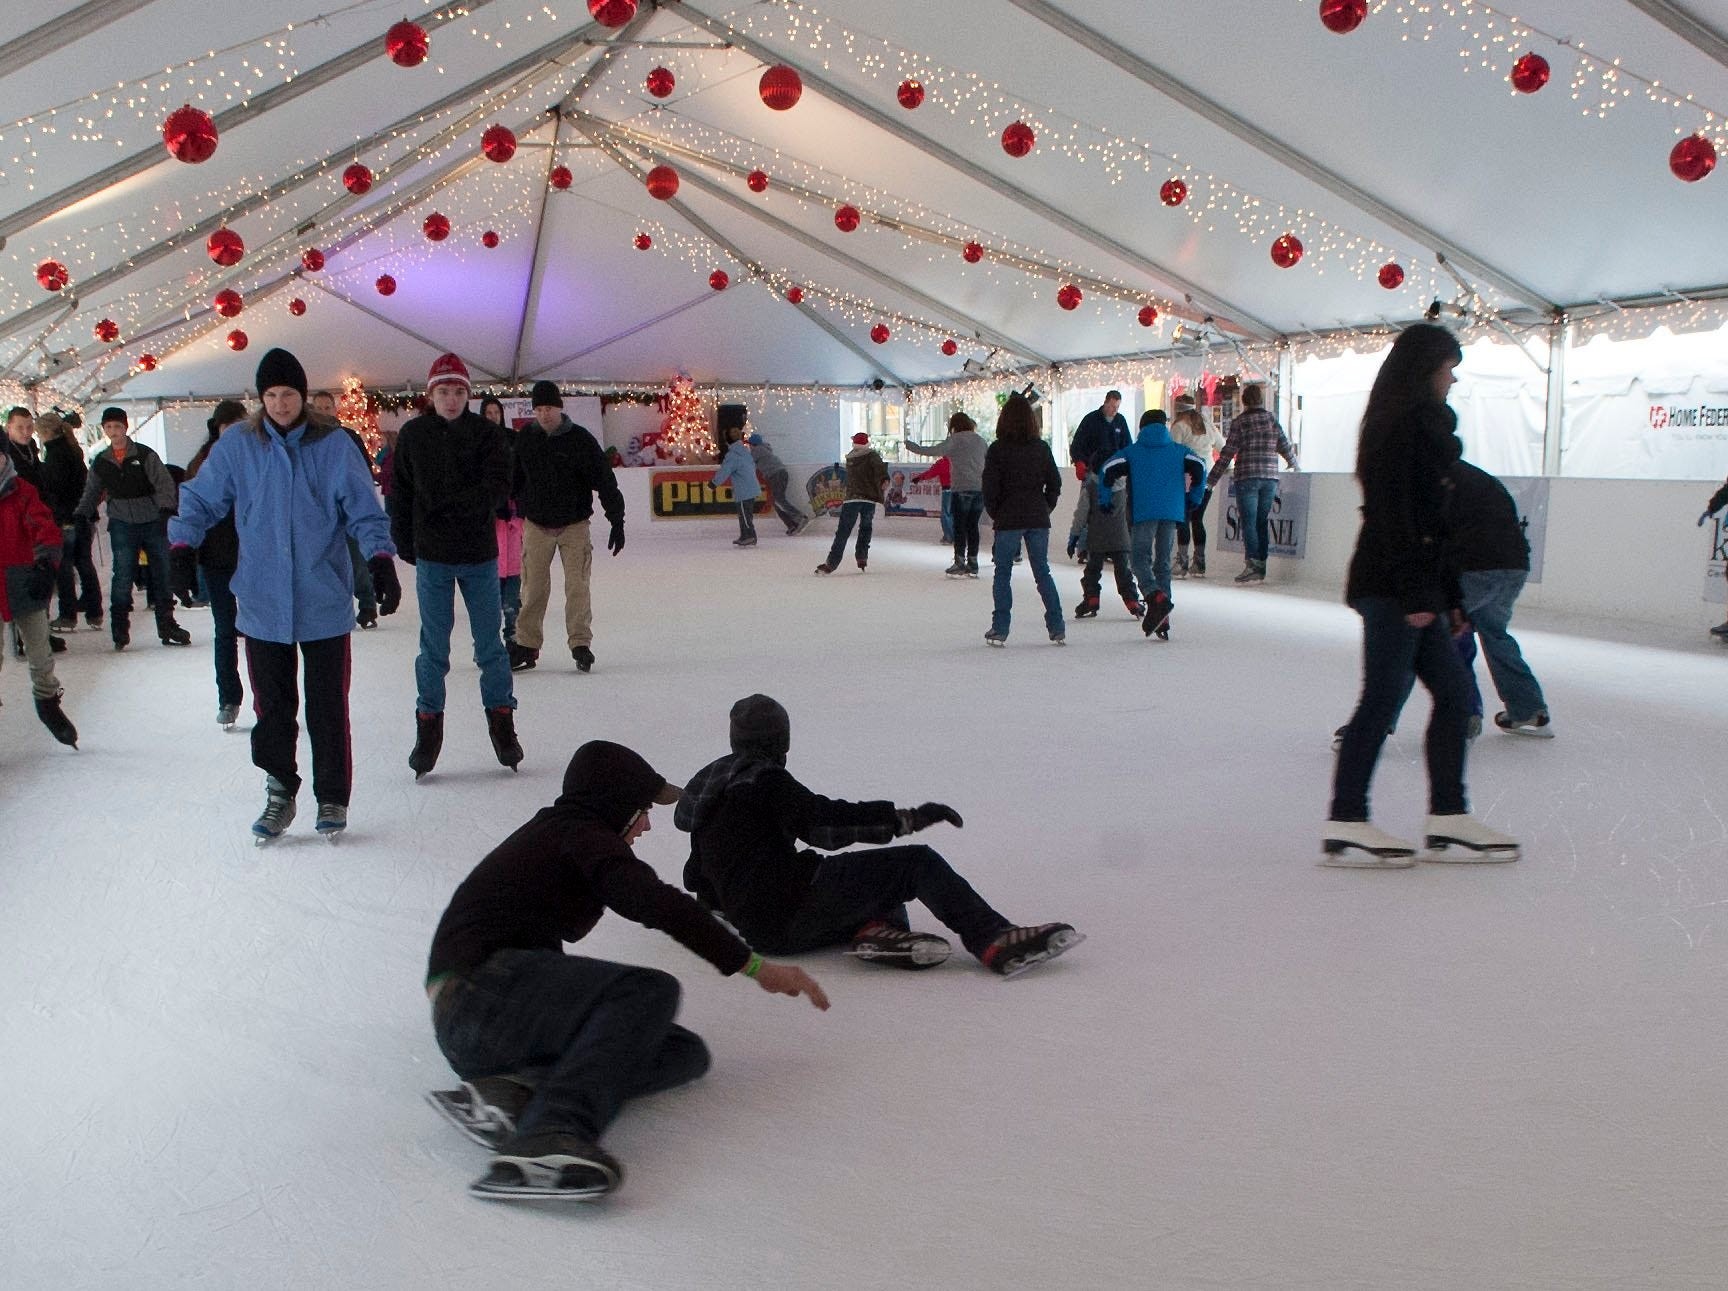 Knoxville's Holidays on Ice, is an outdoor ice skating rink on Market Square in downtown Knoxville.  Skaters can enjoy the ice under a tent with Christmas lights rain or shine.  The skating rink will be closed Christmas Day but will be open till January 5, 2014.